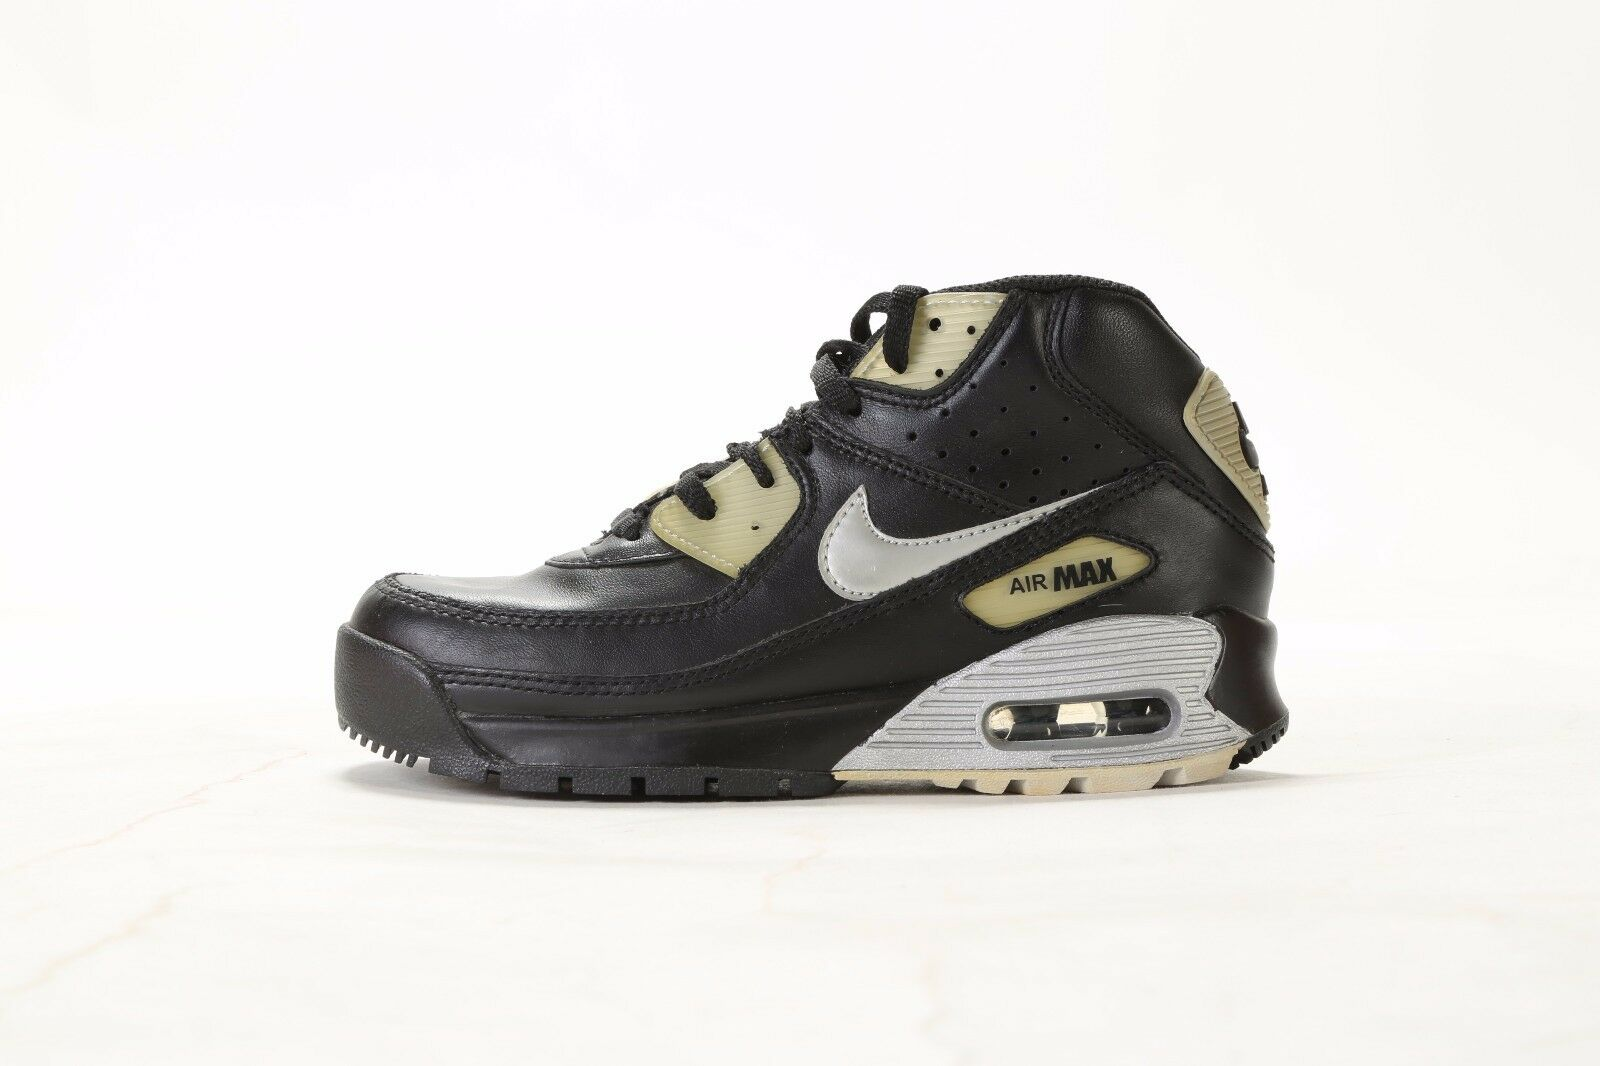 VINTAGE 2007 NIKE AIR MAX 90 BOOT (PS) 317218-002 FEKETE / SILVER (msrp: $ 60)